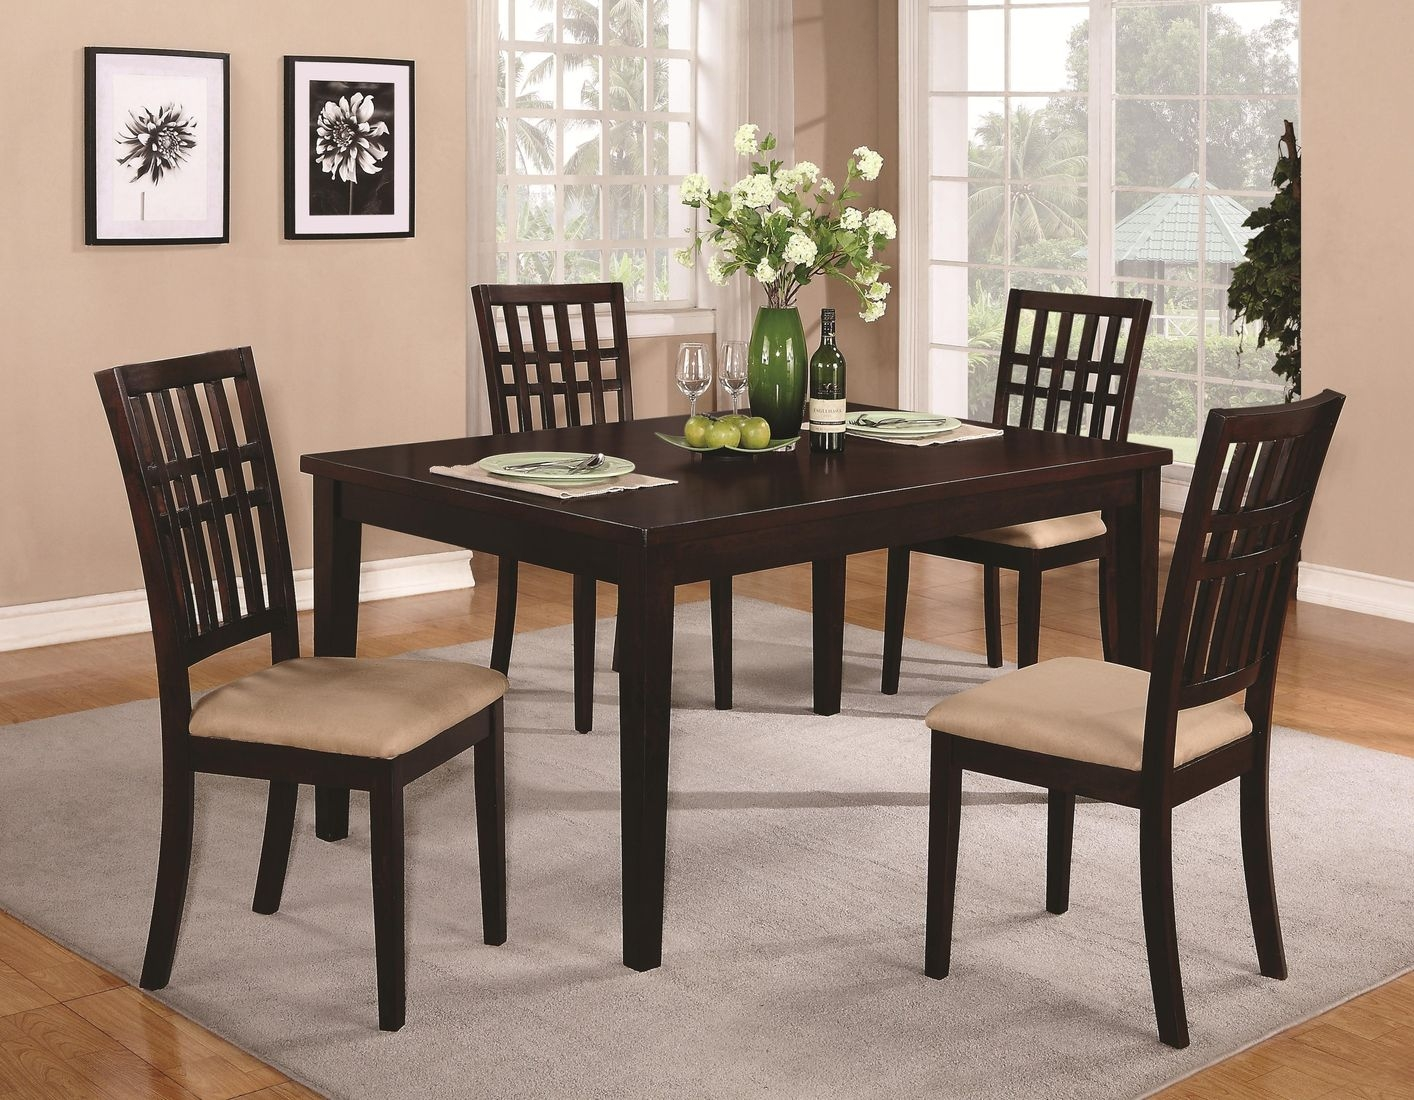 Brandt Dark Cherry Wood Dining Table Steal A Sofa Furniture Outlet